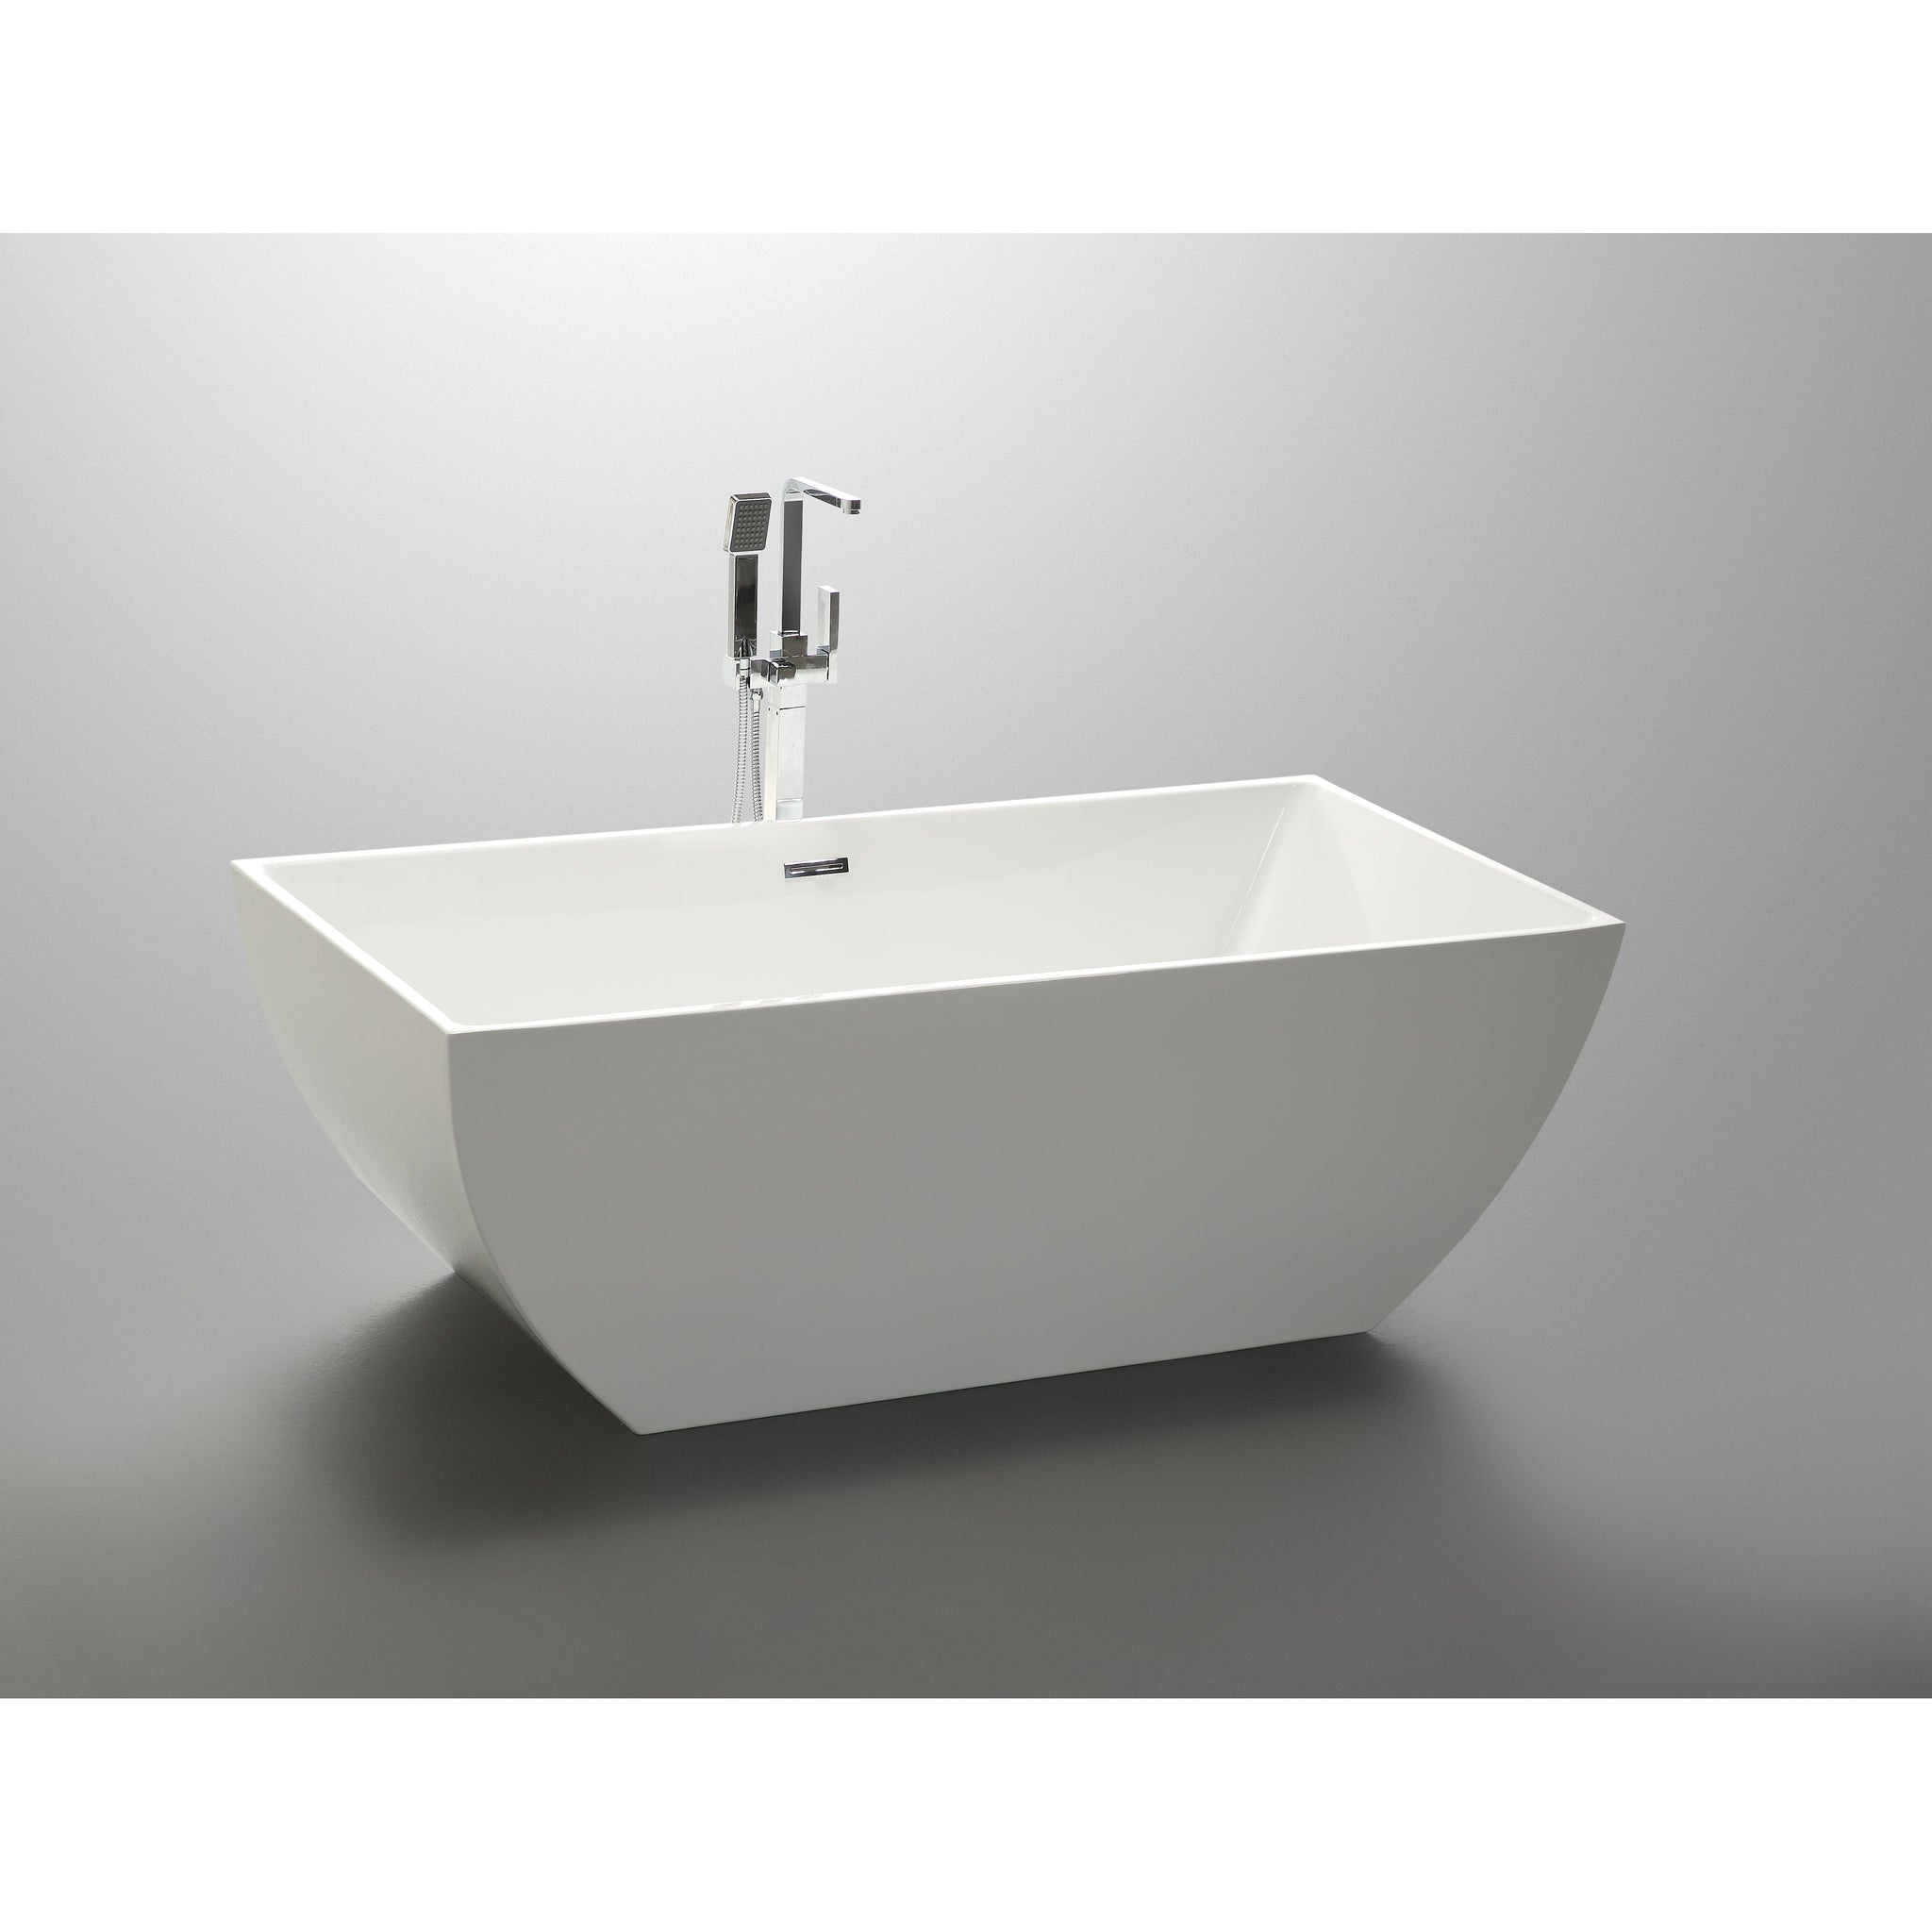 drain manufacturers white faucet installations reversible air acrylic corsica with avano for freestanding com bathtub